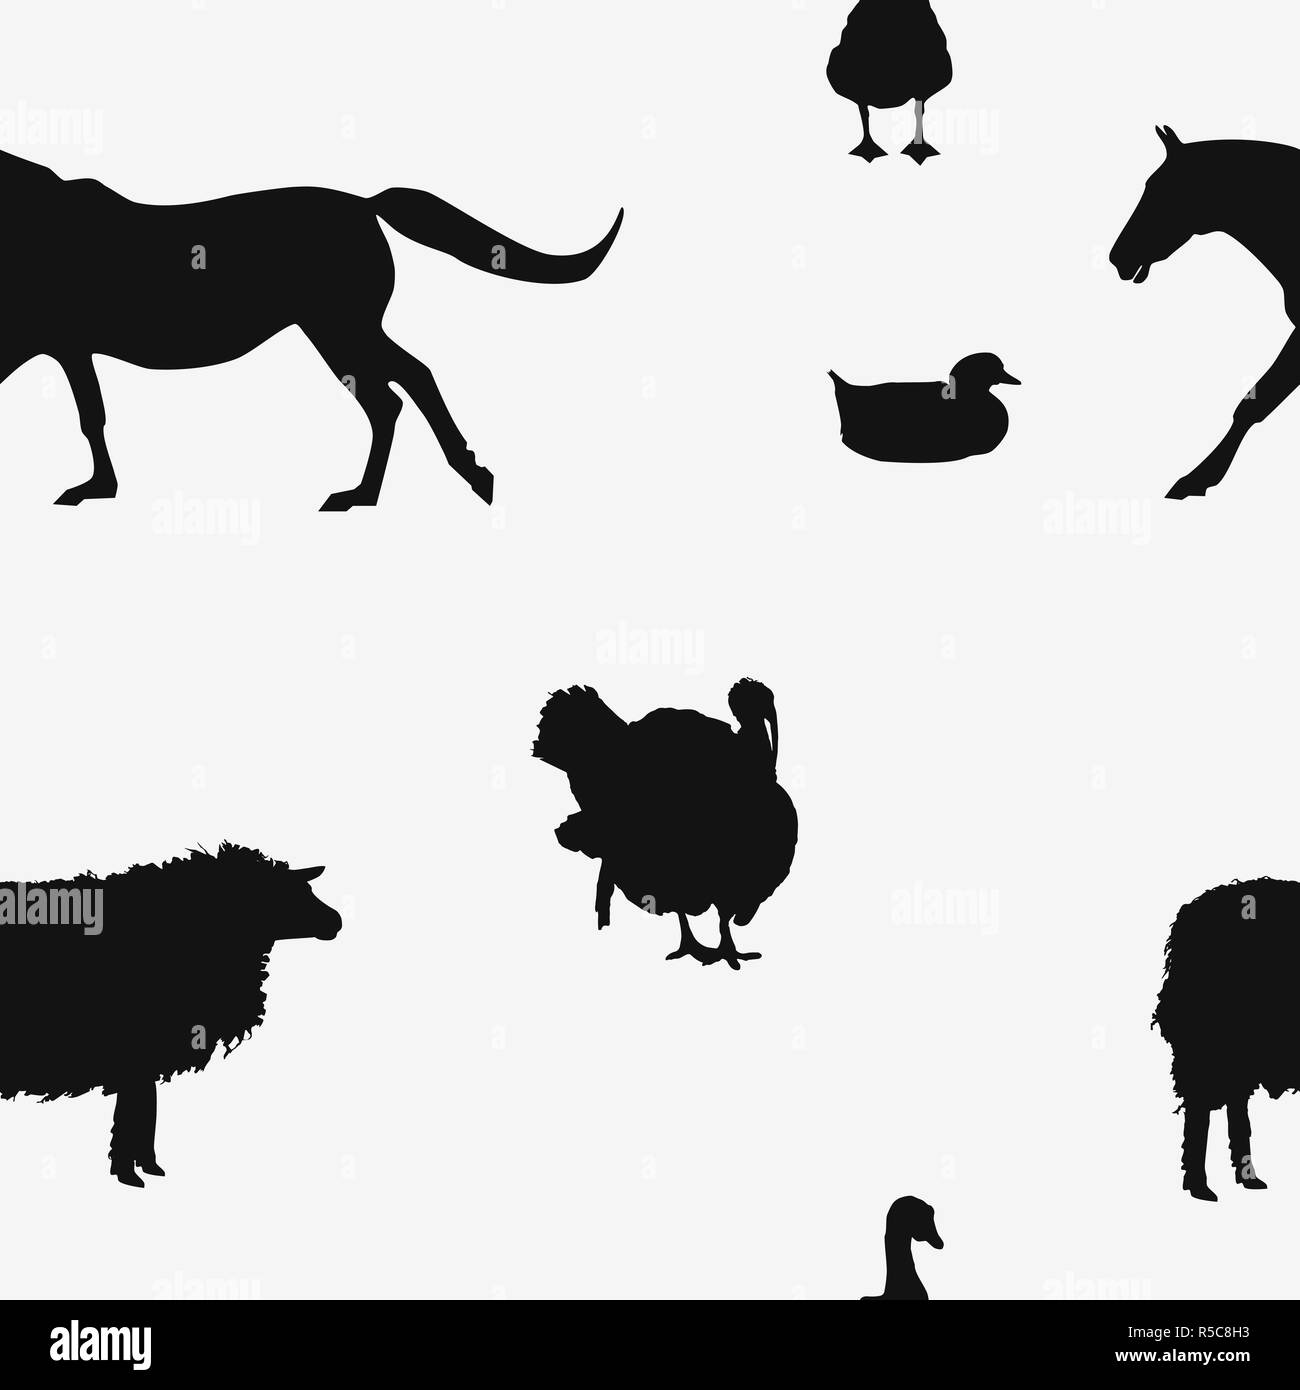 Seamless farm animals pattern black silhouettes isolated on white background. Simple duck, goose bird, sheep, horse wall paper. Butcher shop print Stock Photo